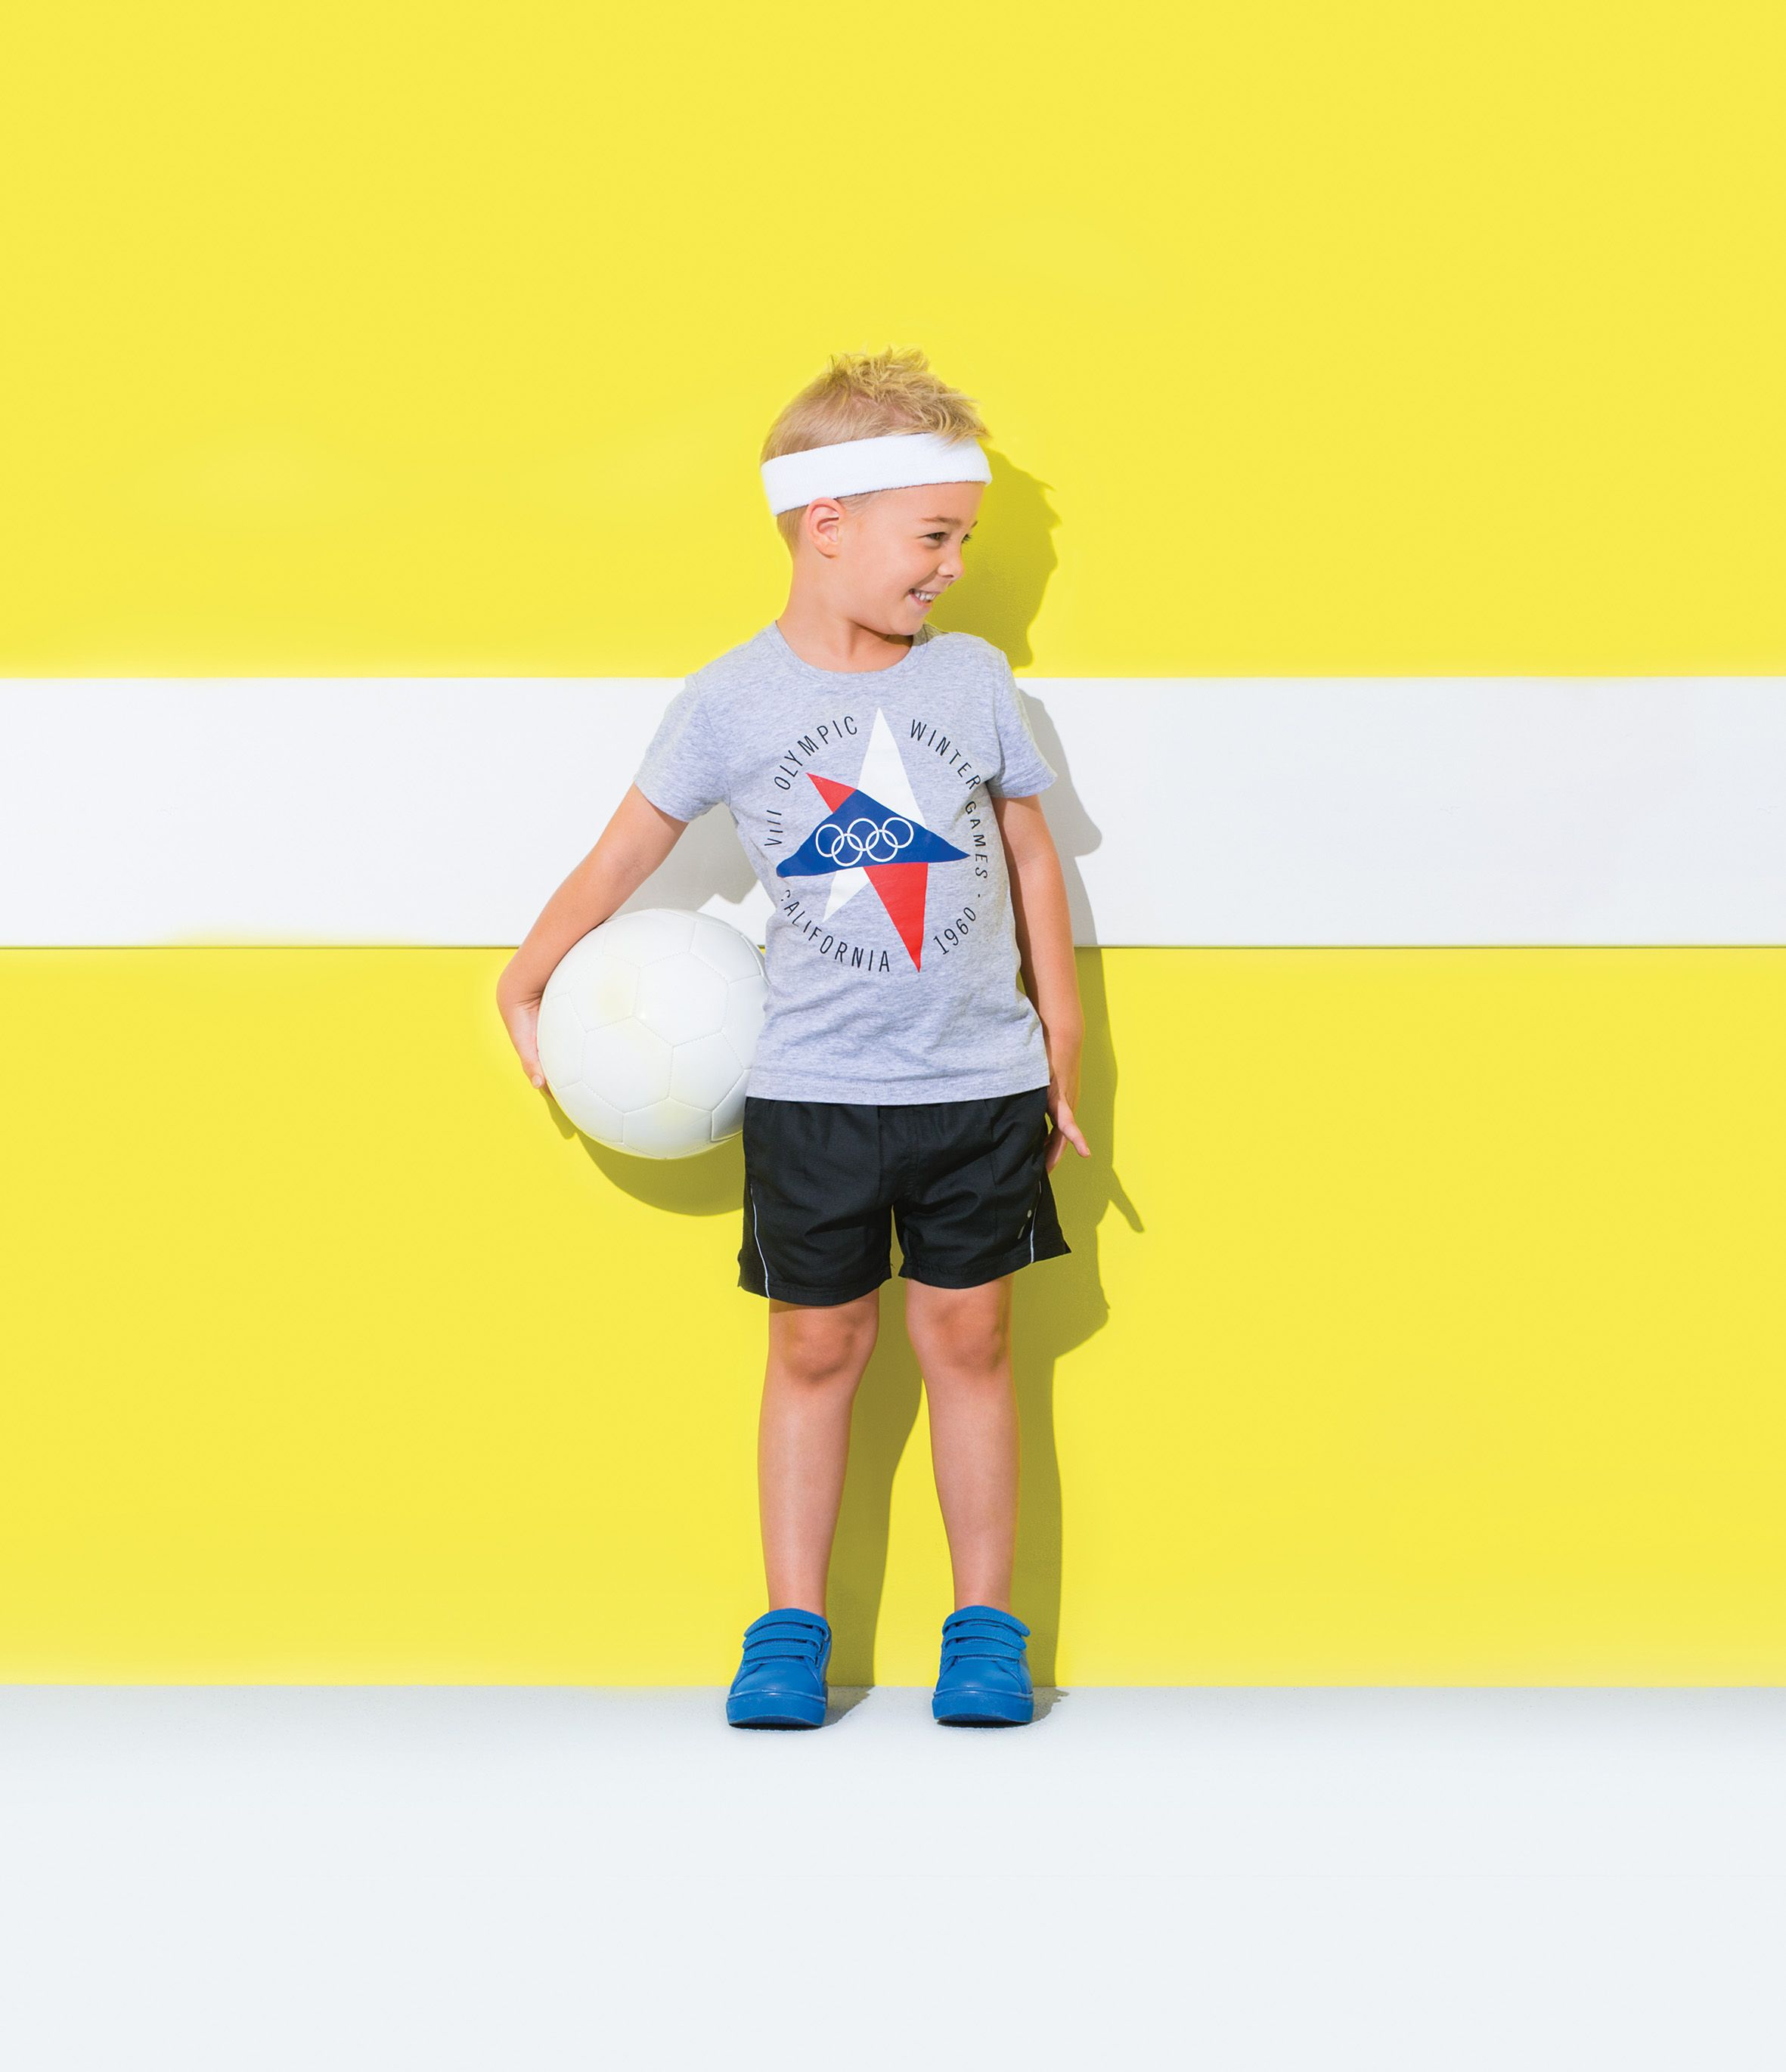 6cc3f31a1f Cotton On Kids Active Campaign 2016 // www.cottononkids.com | XHF ...